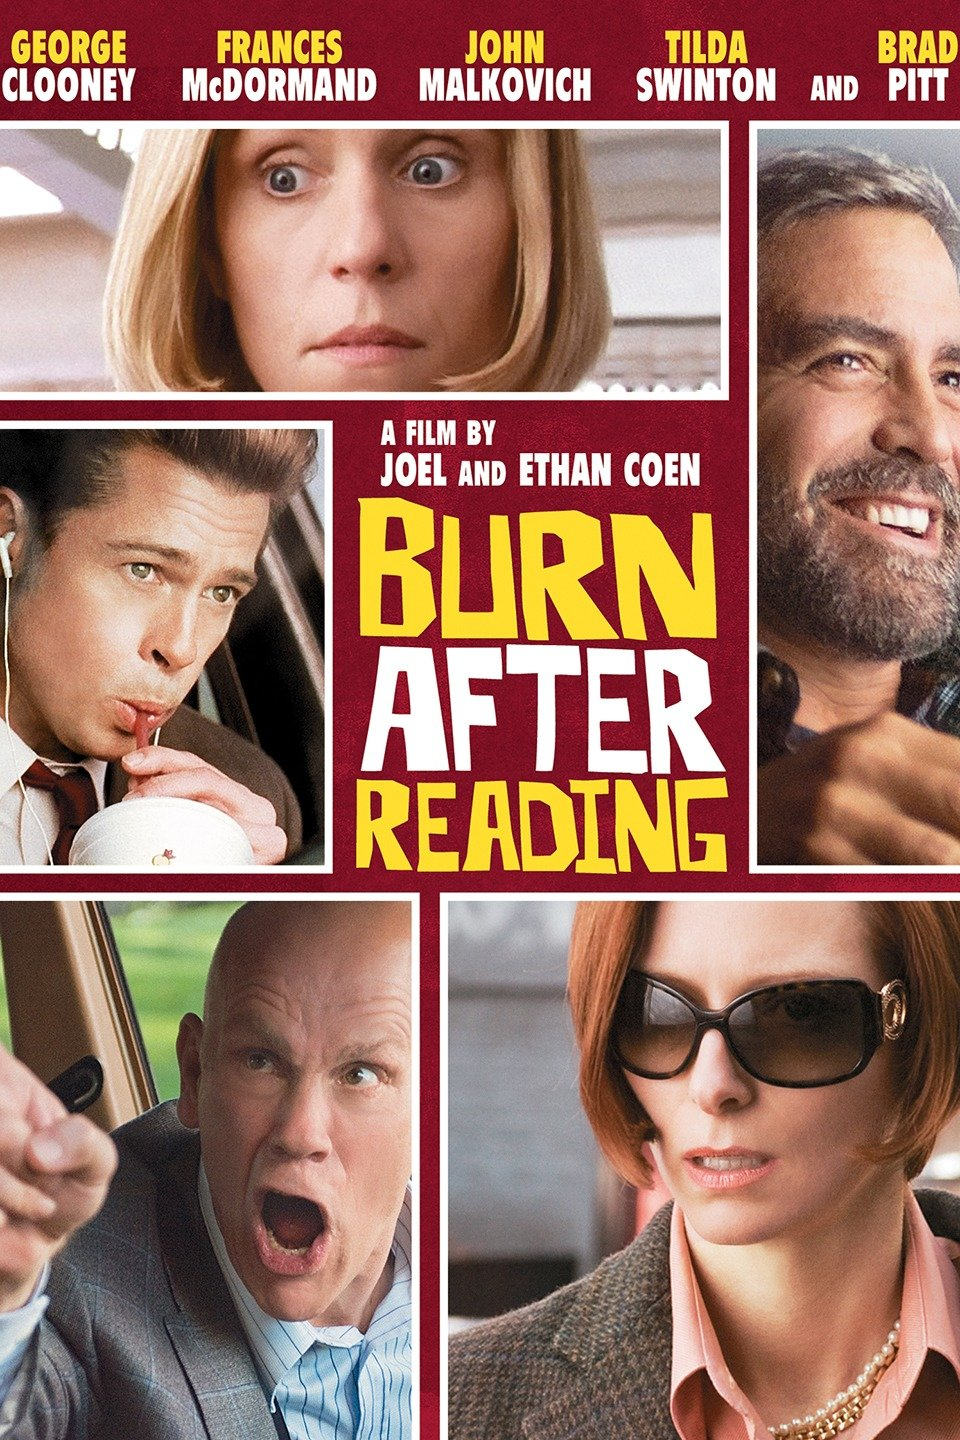 Burn After Reading DVD cover